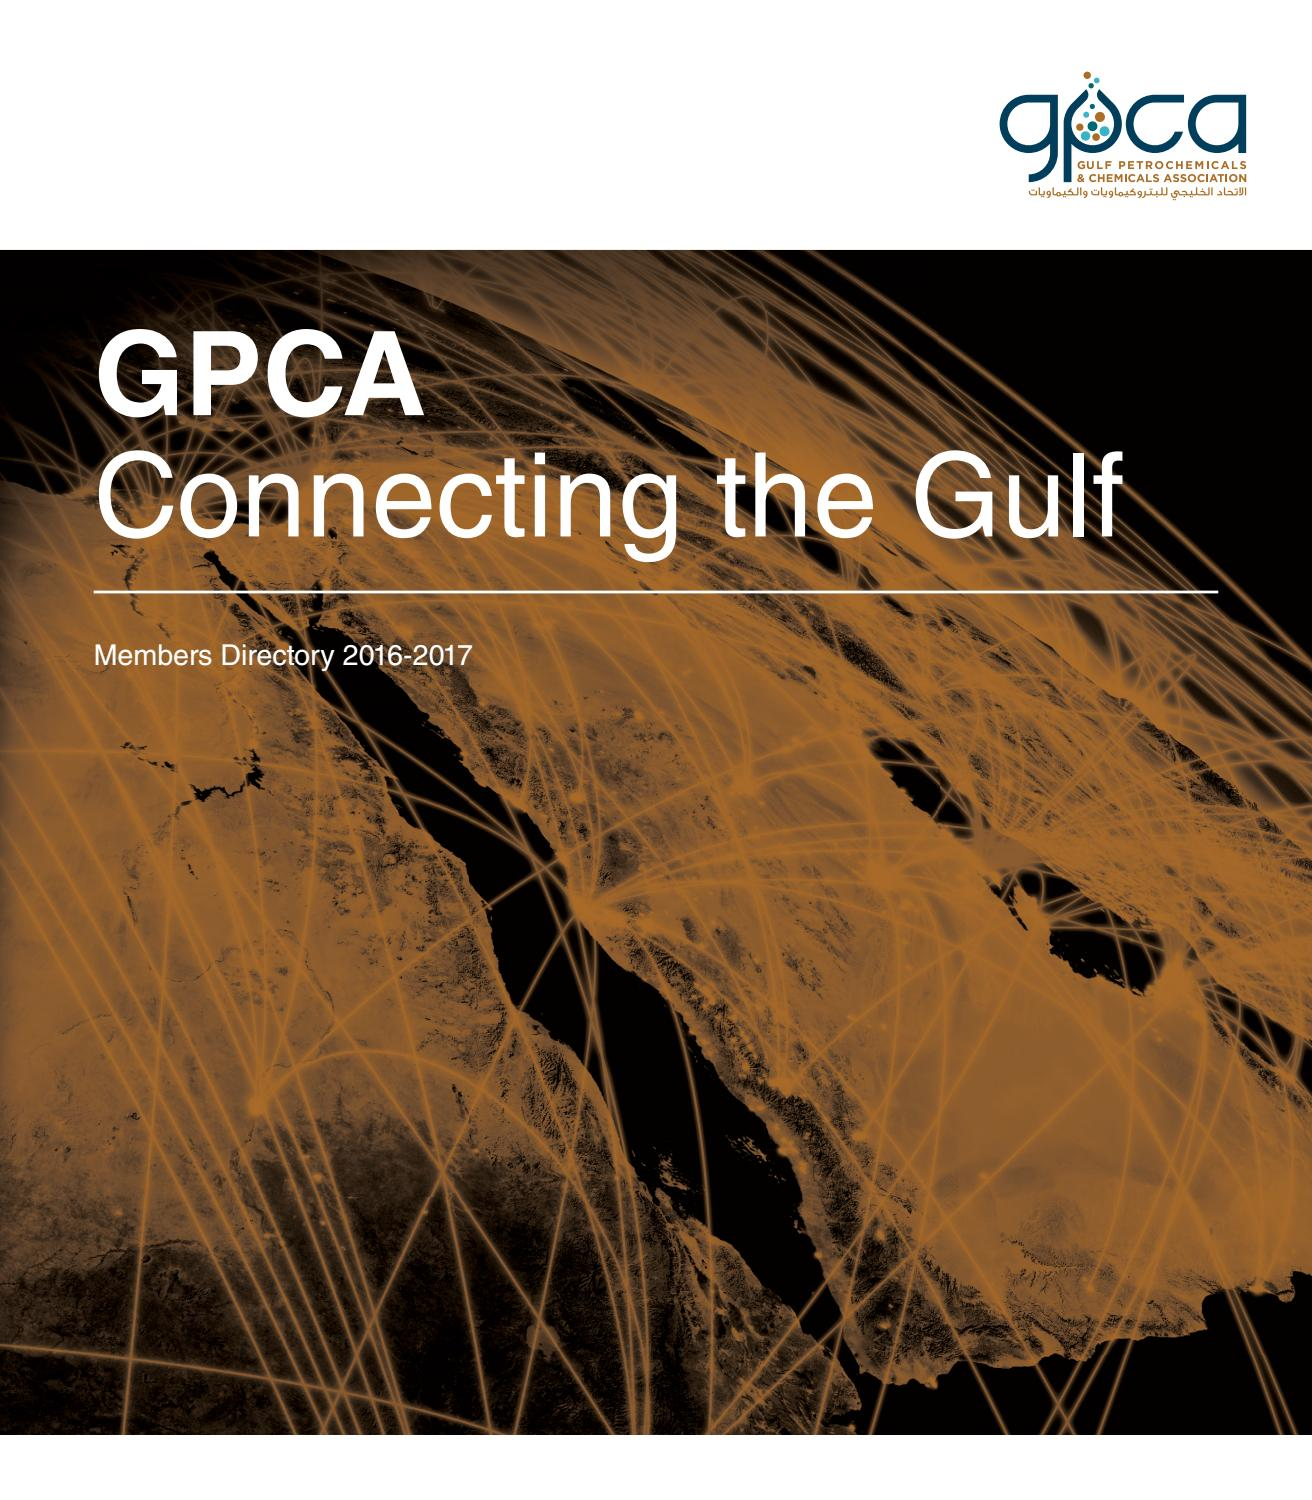 GPCA Connecting the Gulf - 2016 - 2017 by wesam issa - issuu